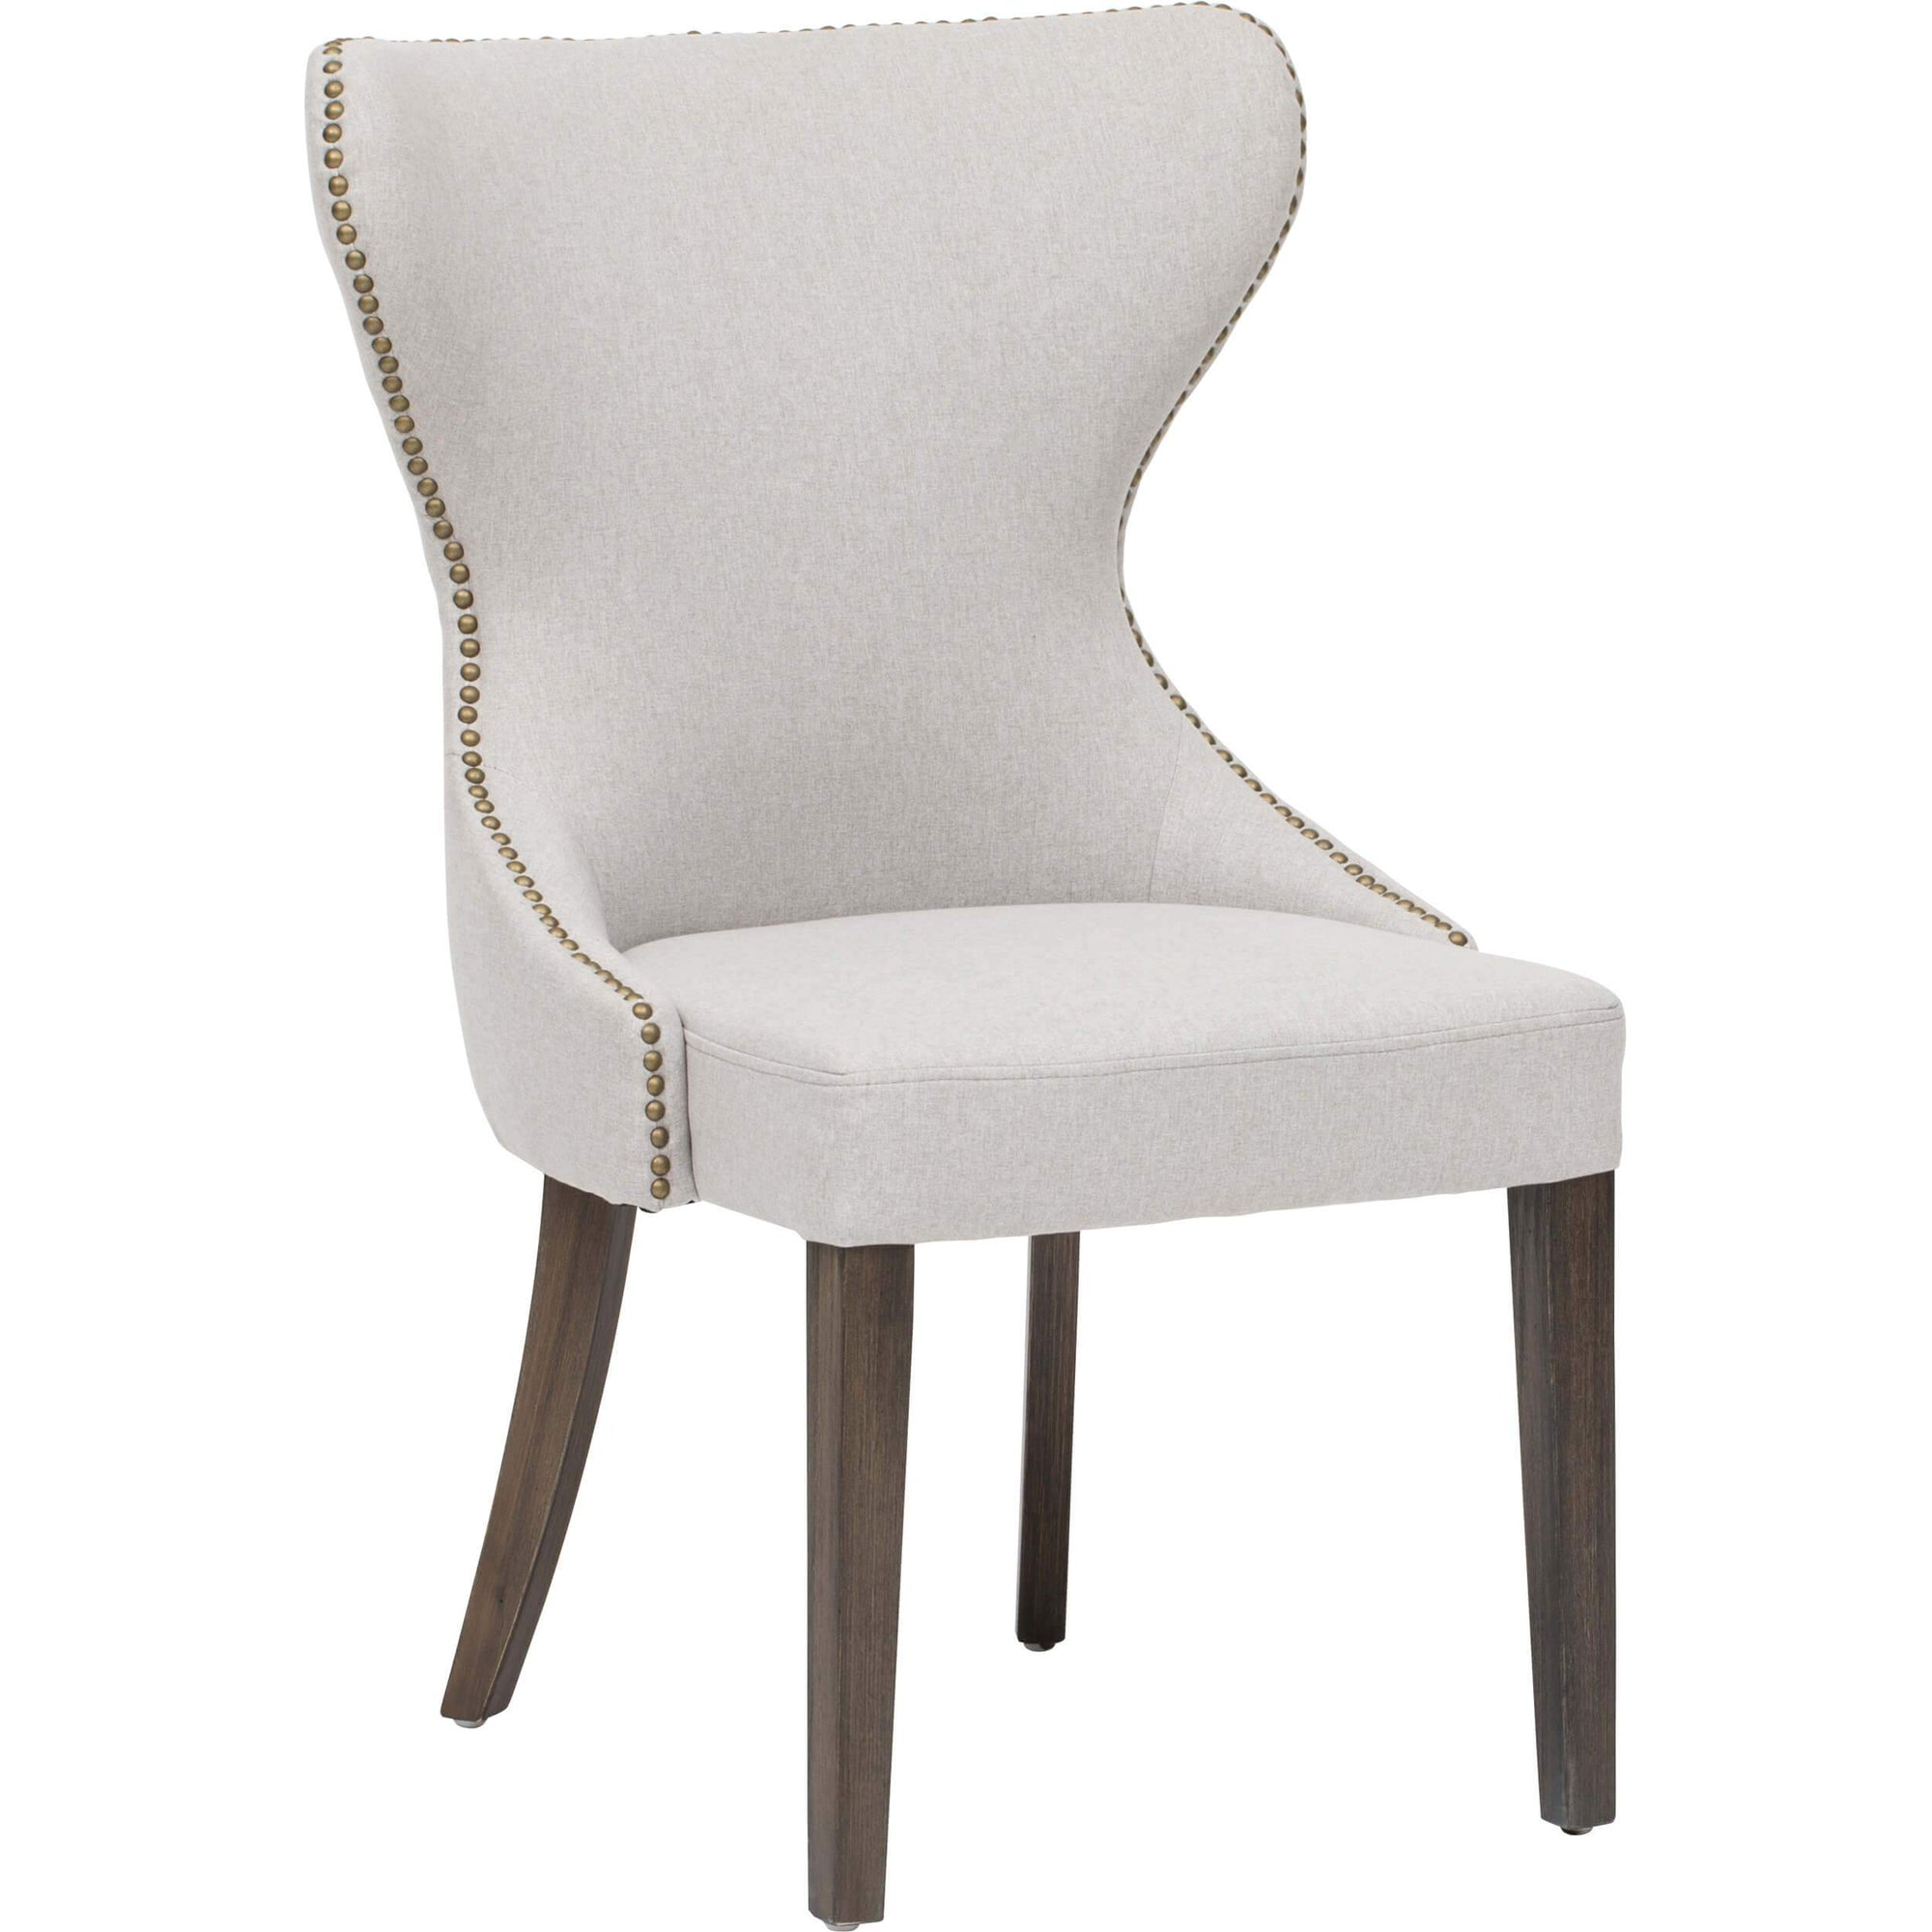 Tremendous Ariana Dining Chair Light Grey Brass Nailheads Ncnpc Chair Design For Home Ncnpcorg